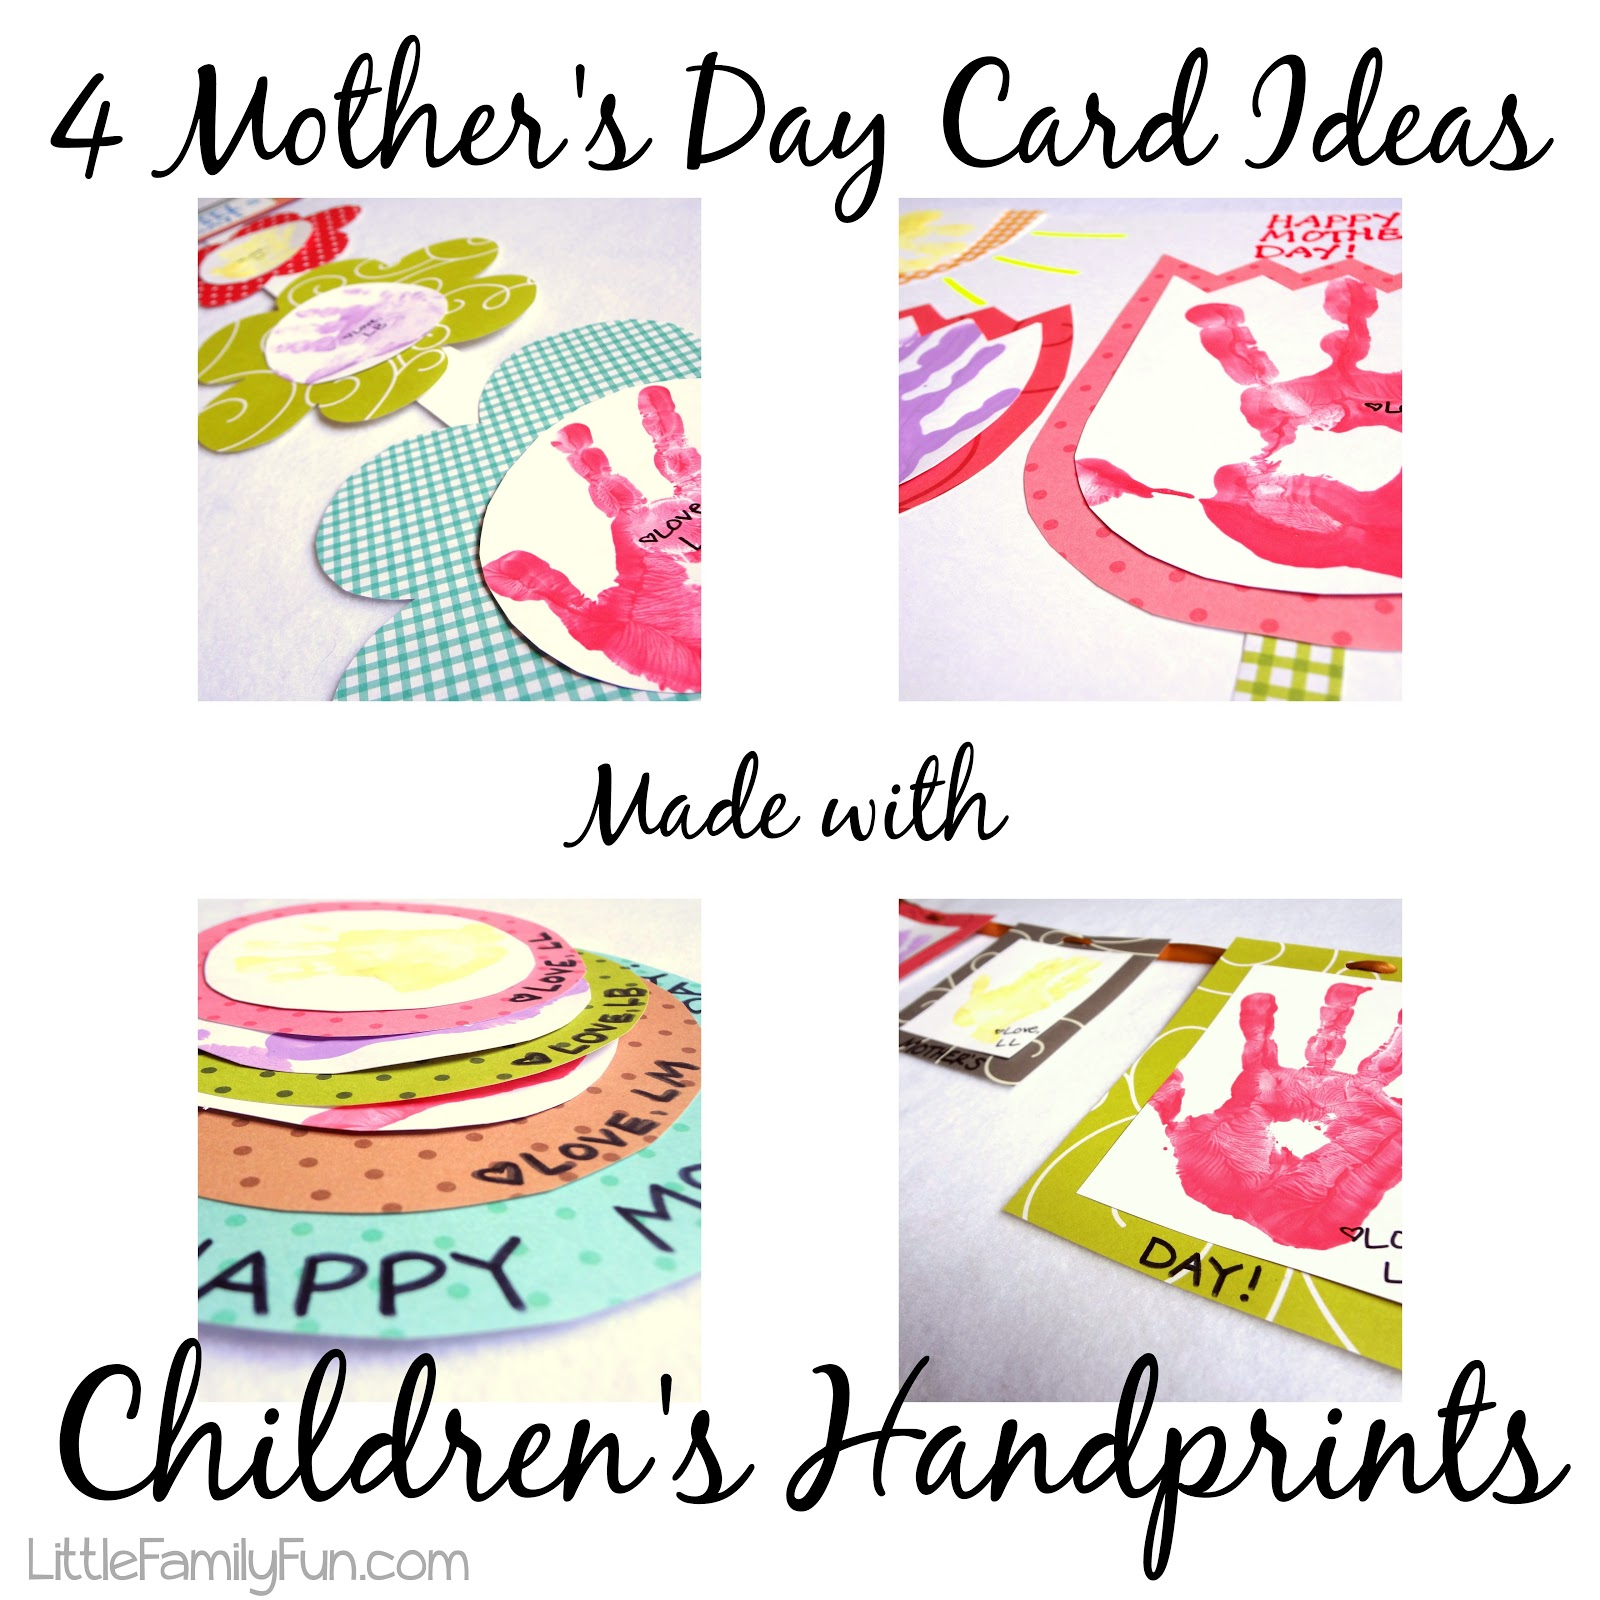 4 Mother's Day Card Ideas - Handprints